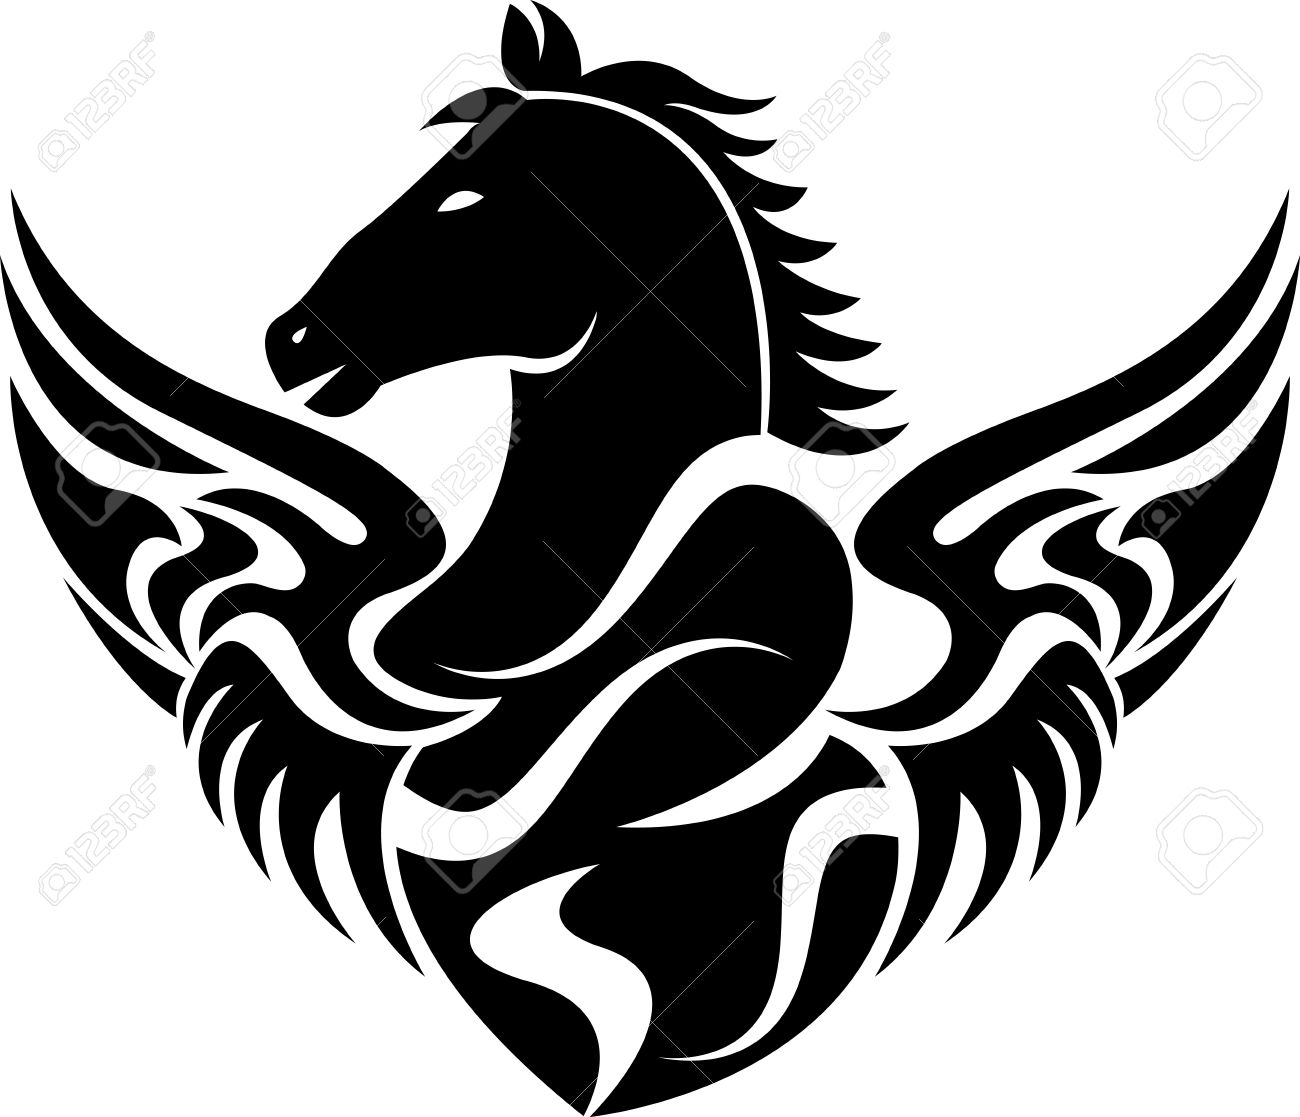 illustration art of a fly horse icon with isolated background